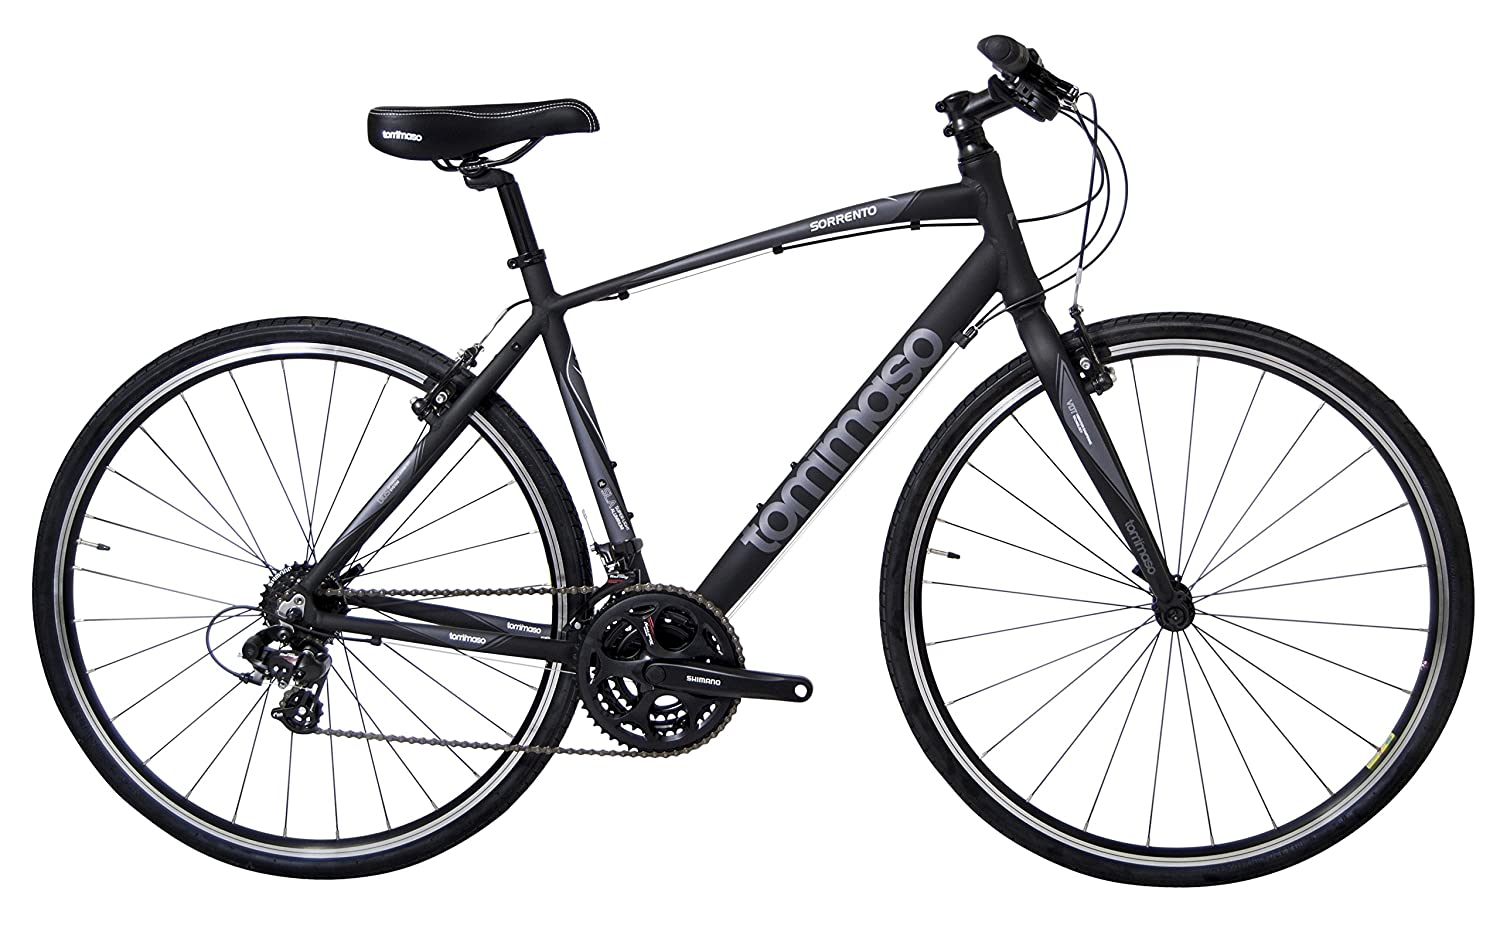 Shimano Tourney Hybrid Bike Best Flat Bar Touring Bike